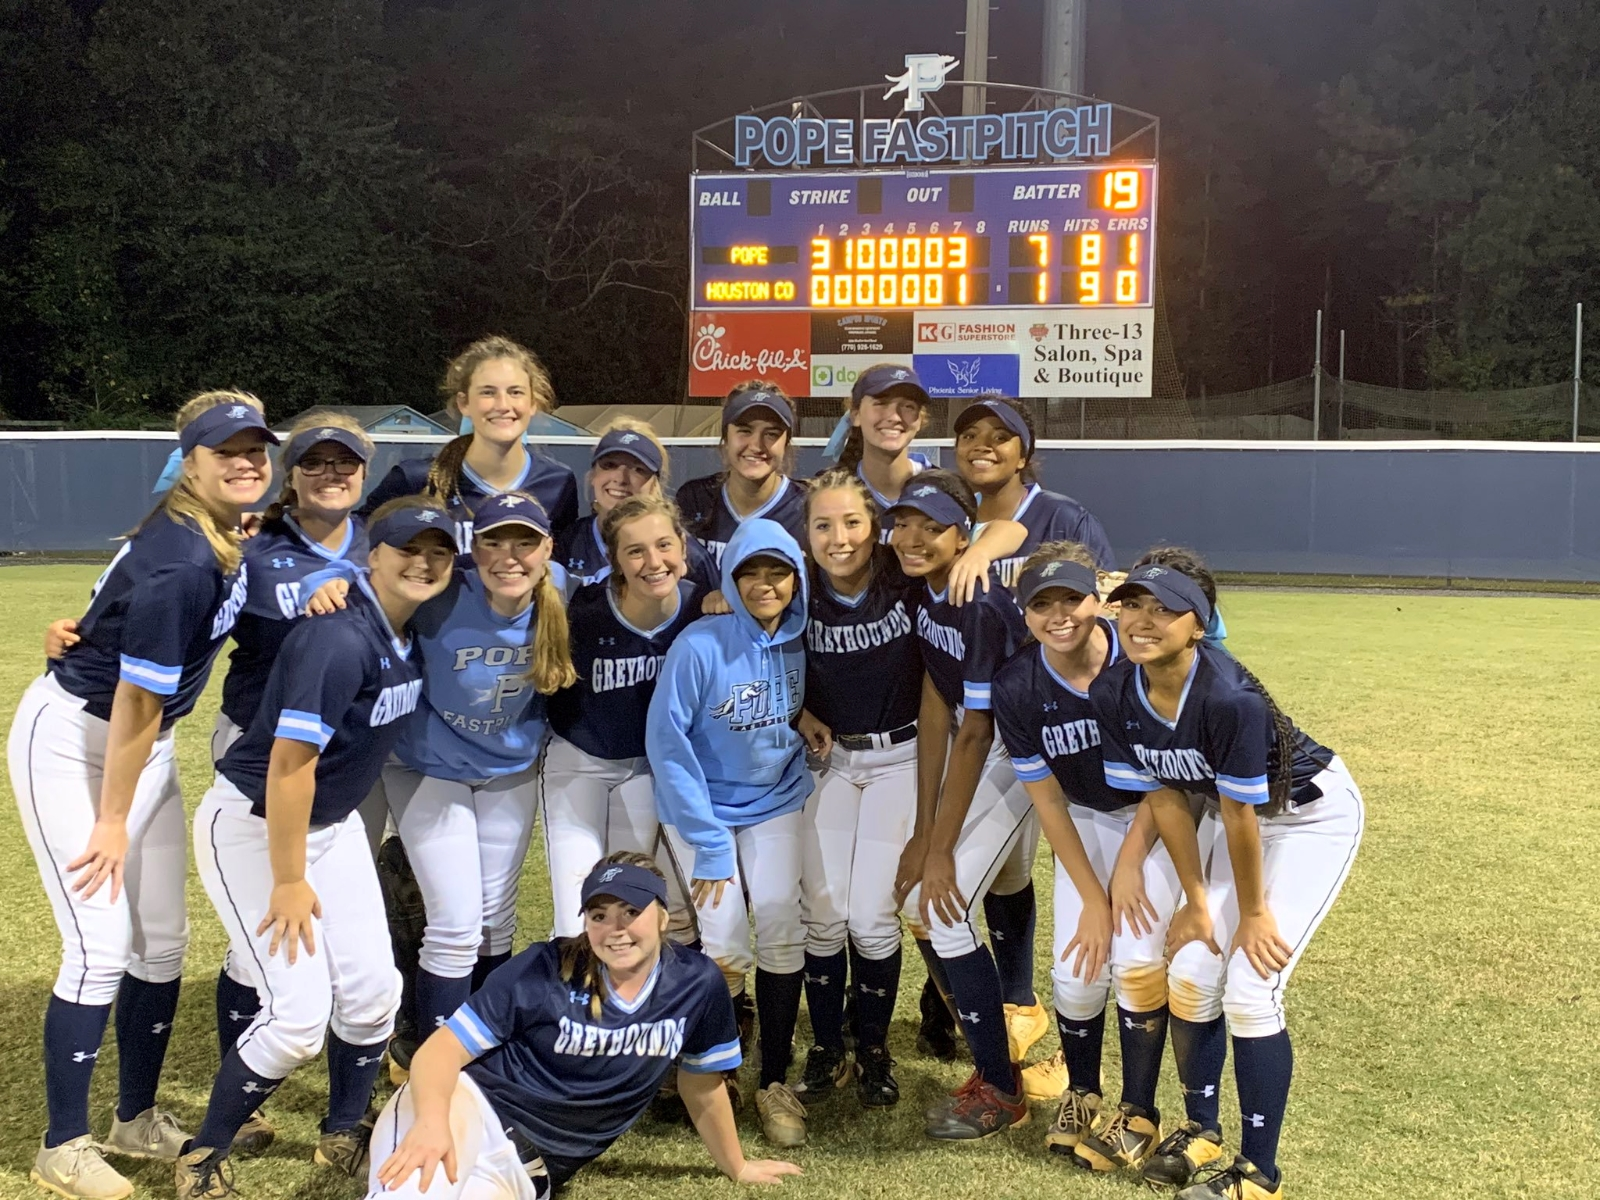 Pope Fastpitch advances to State Finals Tournament